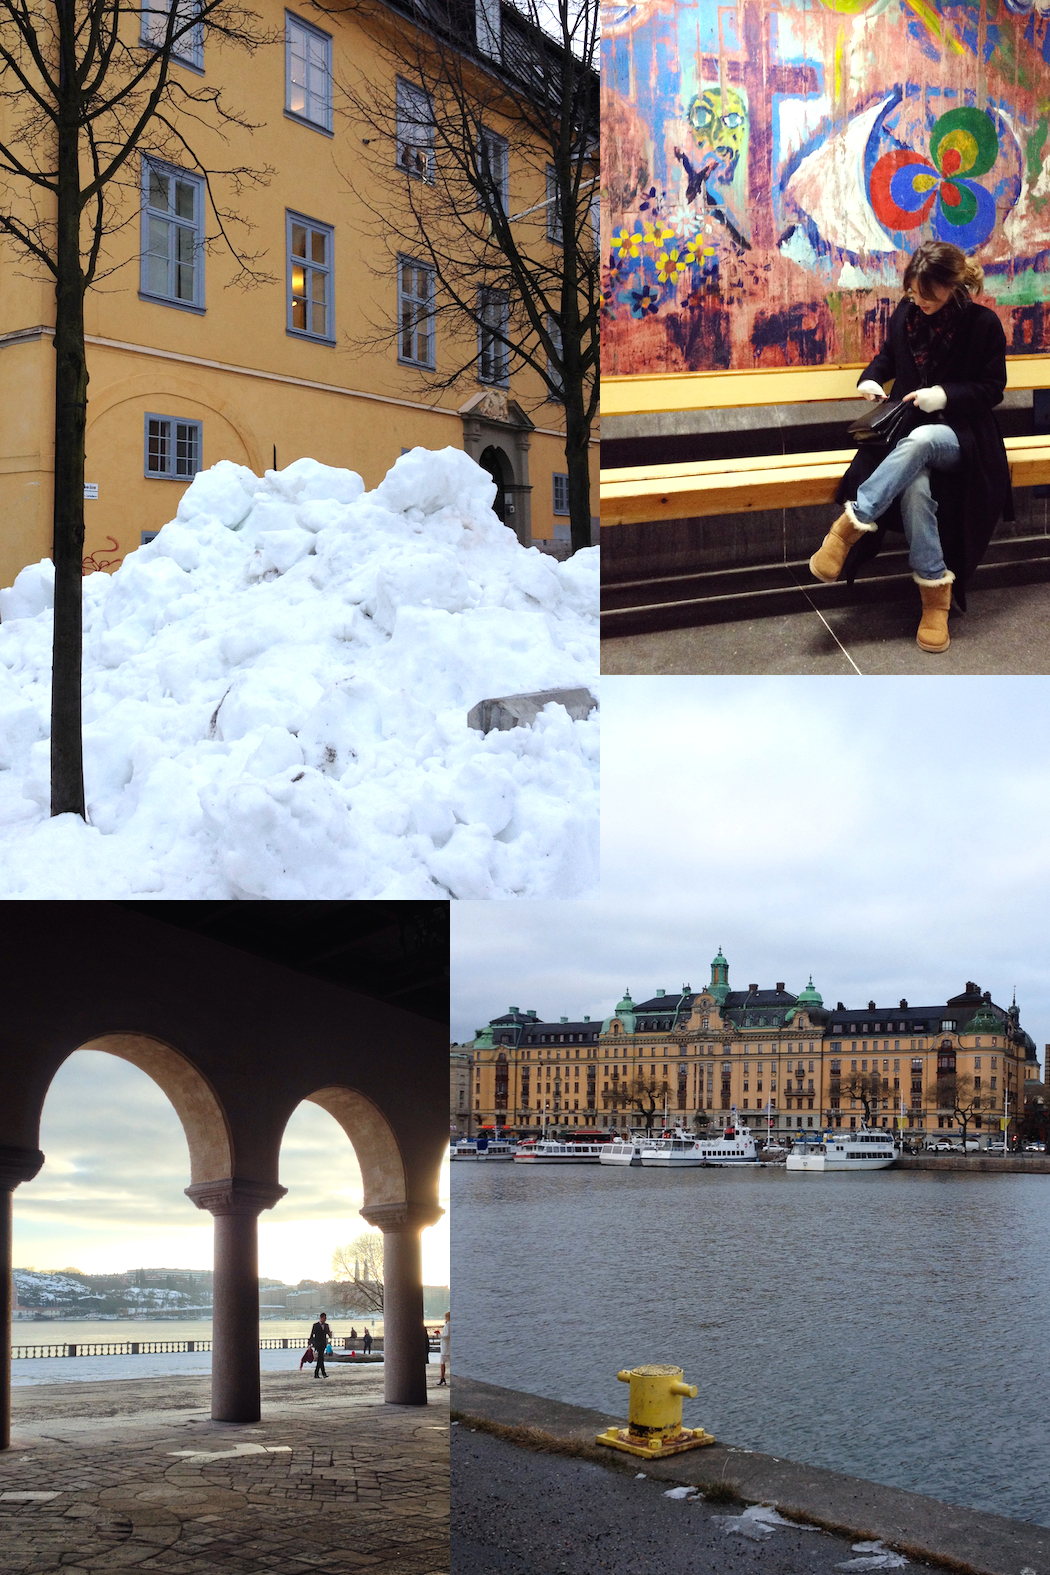 Stockholm photo diary fash-n-chips.com 2